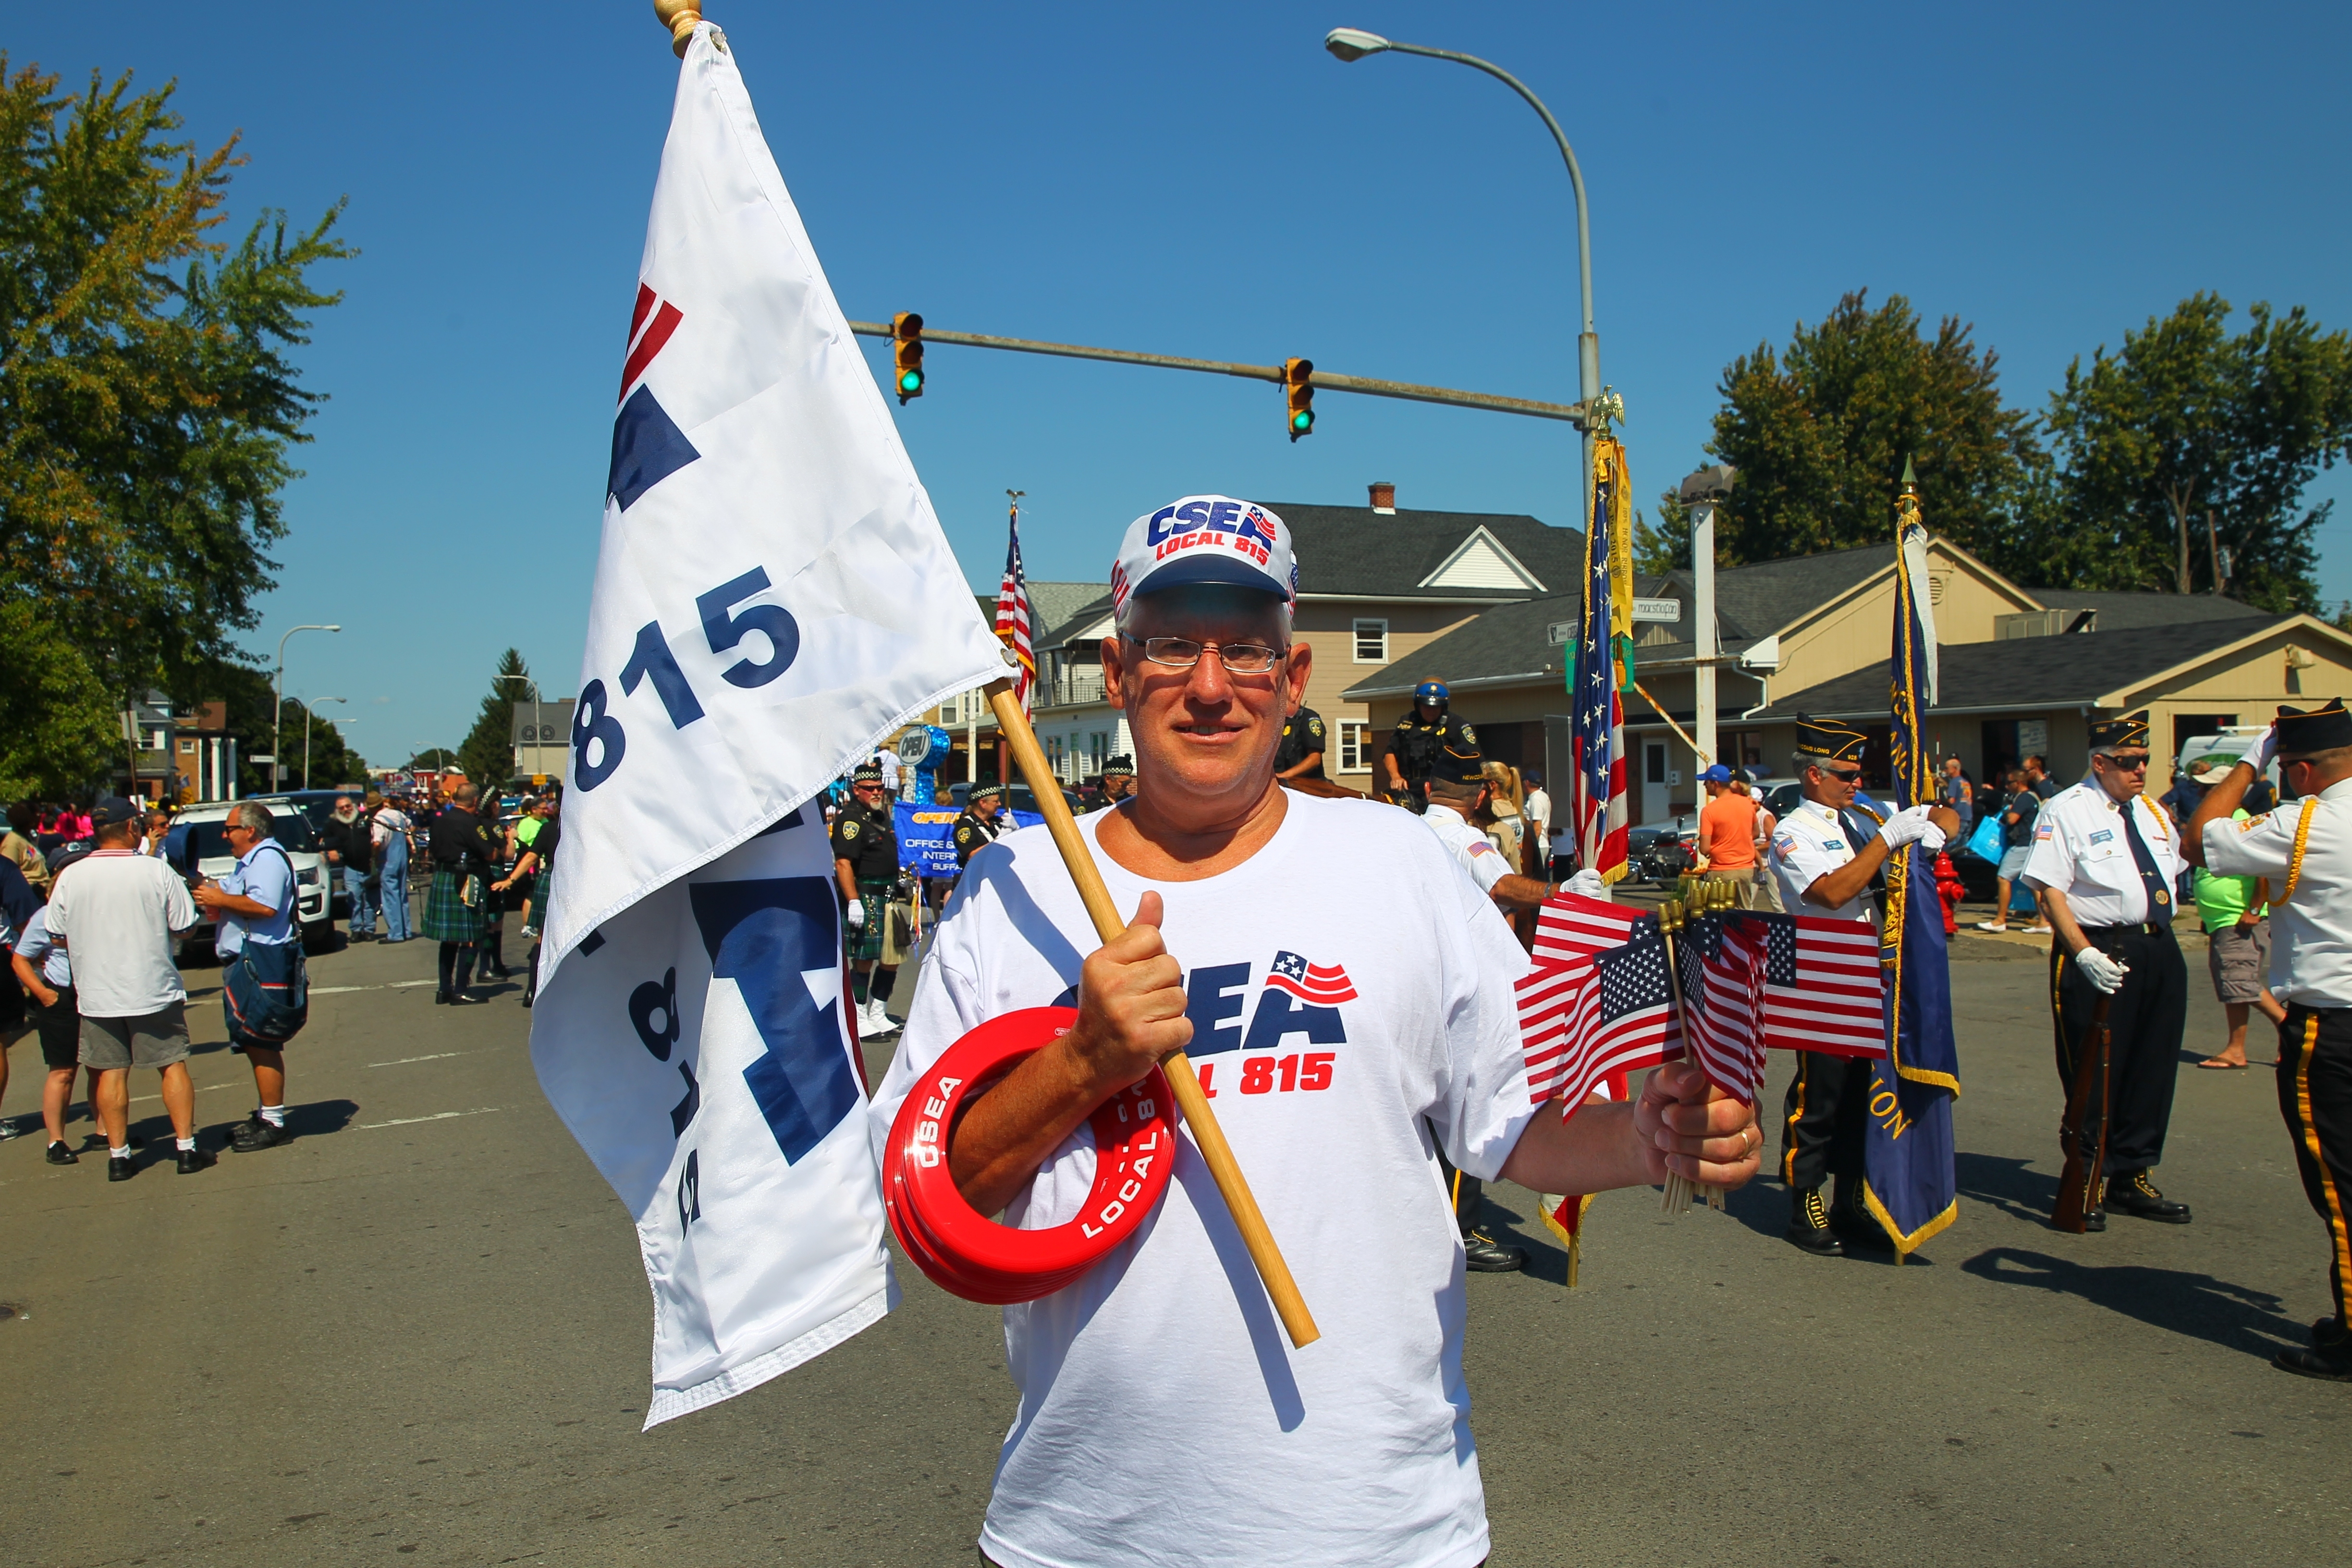 Steve Szymura, executive V.P. of CSEA Loacal 815 which represents Town, Village and County Employee's, at the Labor Day parade from the Buffalo Irish Center south on Abbott Road to Cazenovia Street and into the park in Buffalo, N.Y. on Monday Sept. 5, 2016.  (John Hickey/Buffalo News)